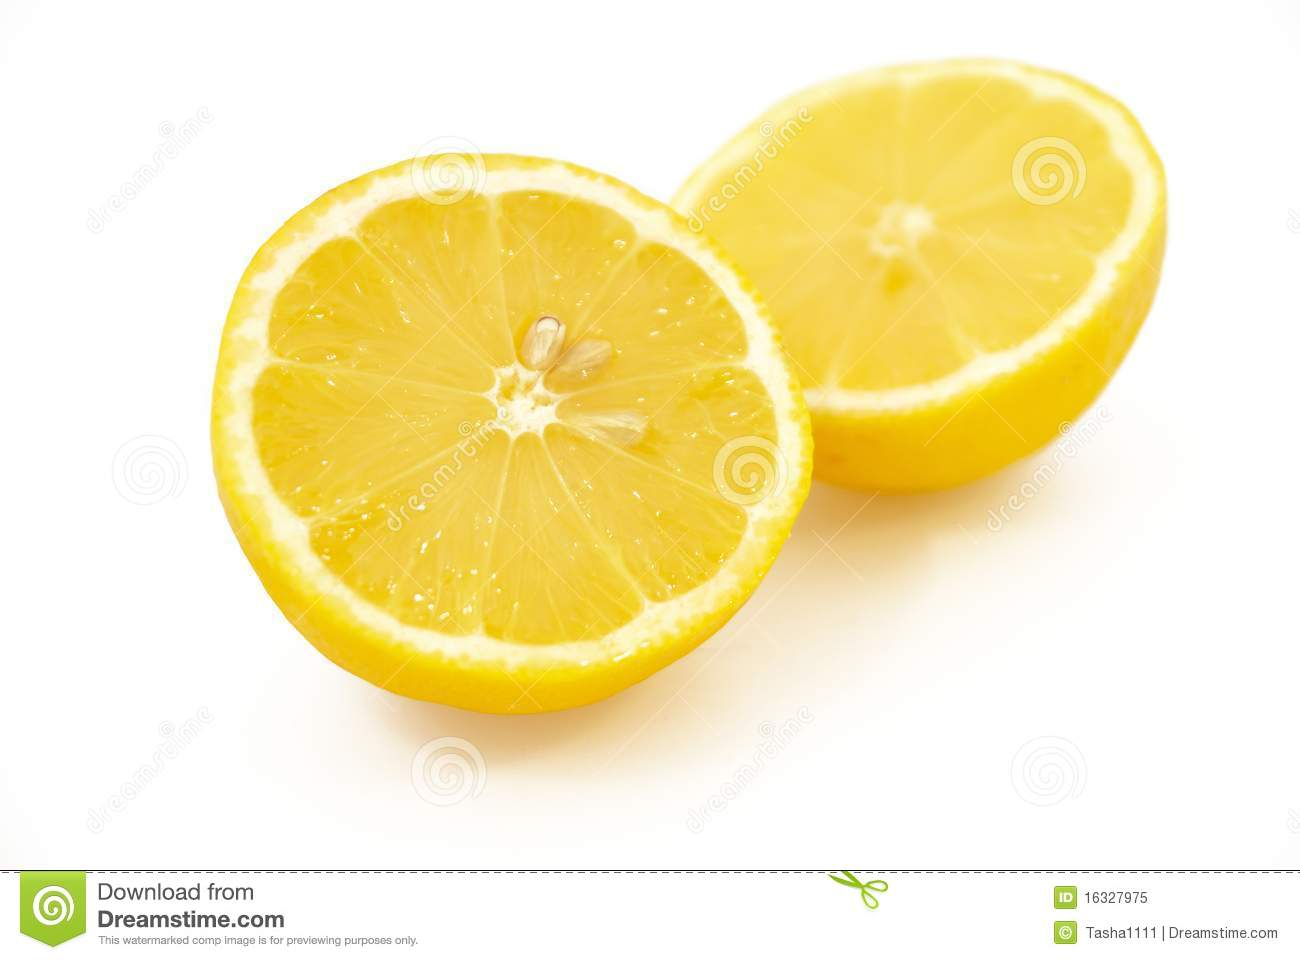 Royalty Free Stock Photo: Two halves of lemon Images - Frompo